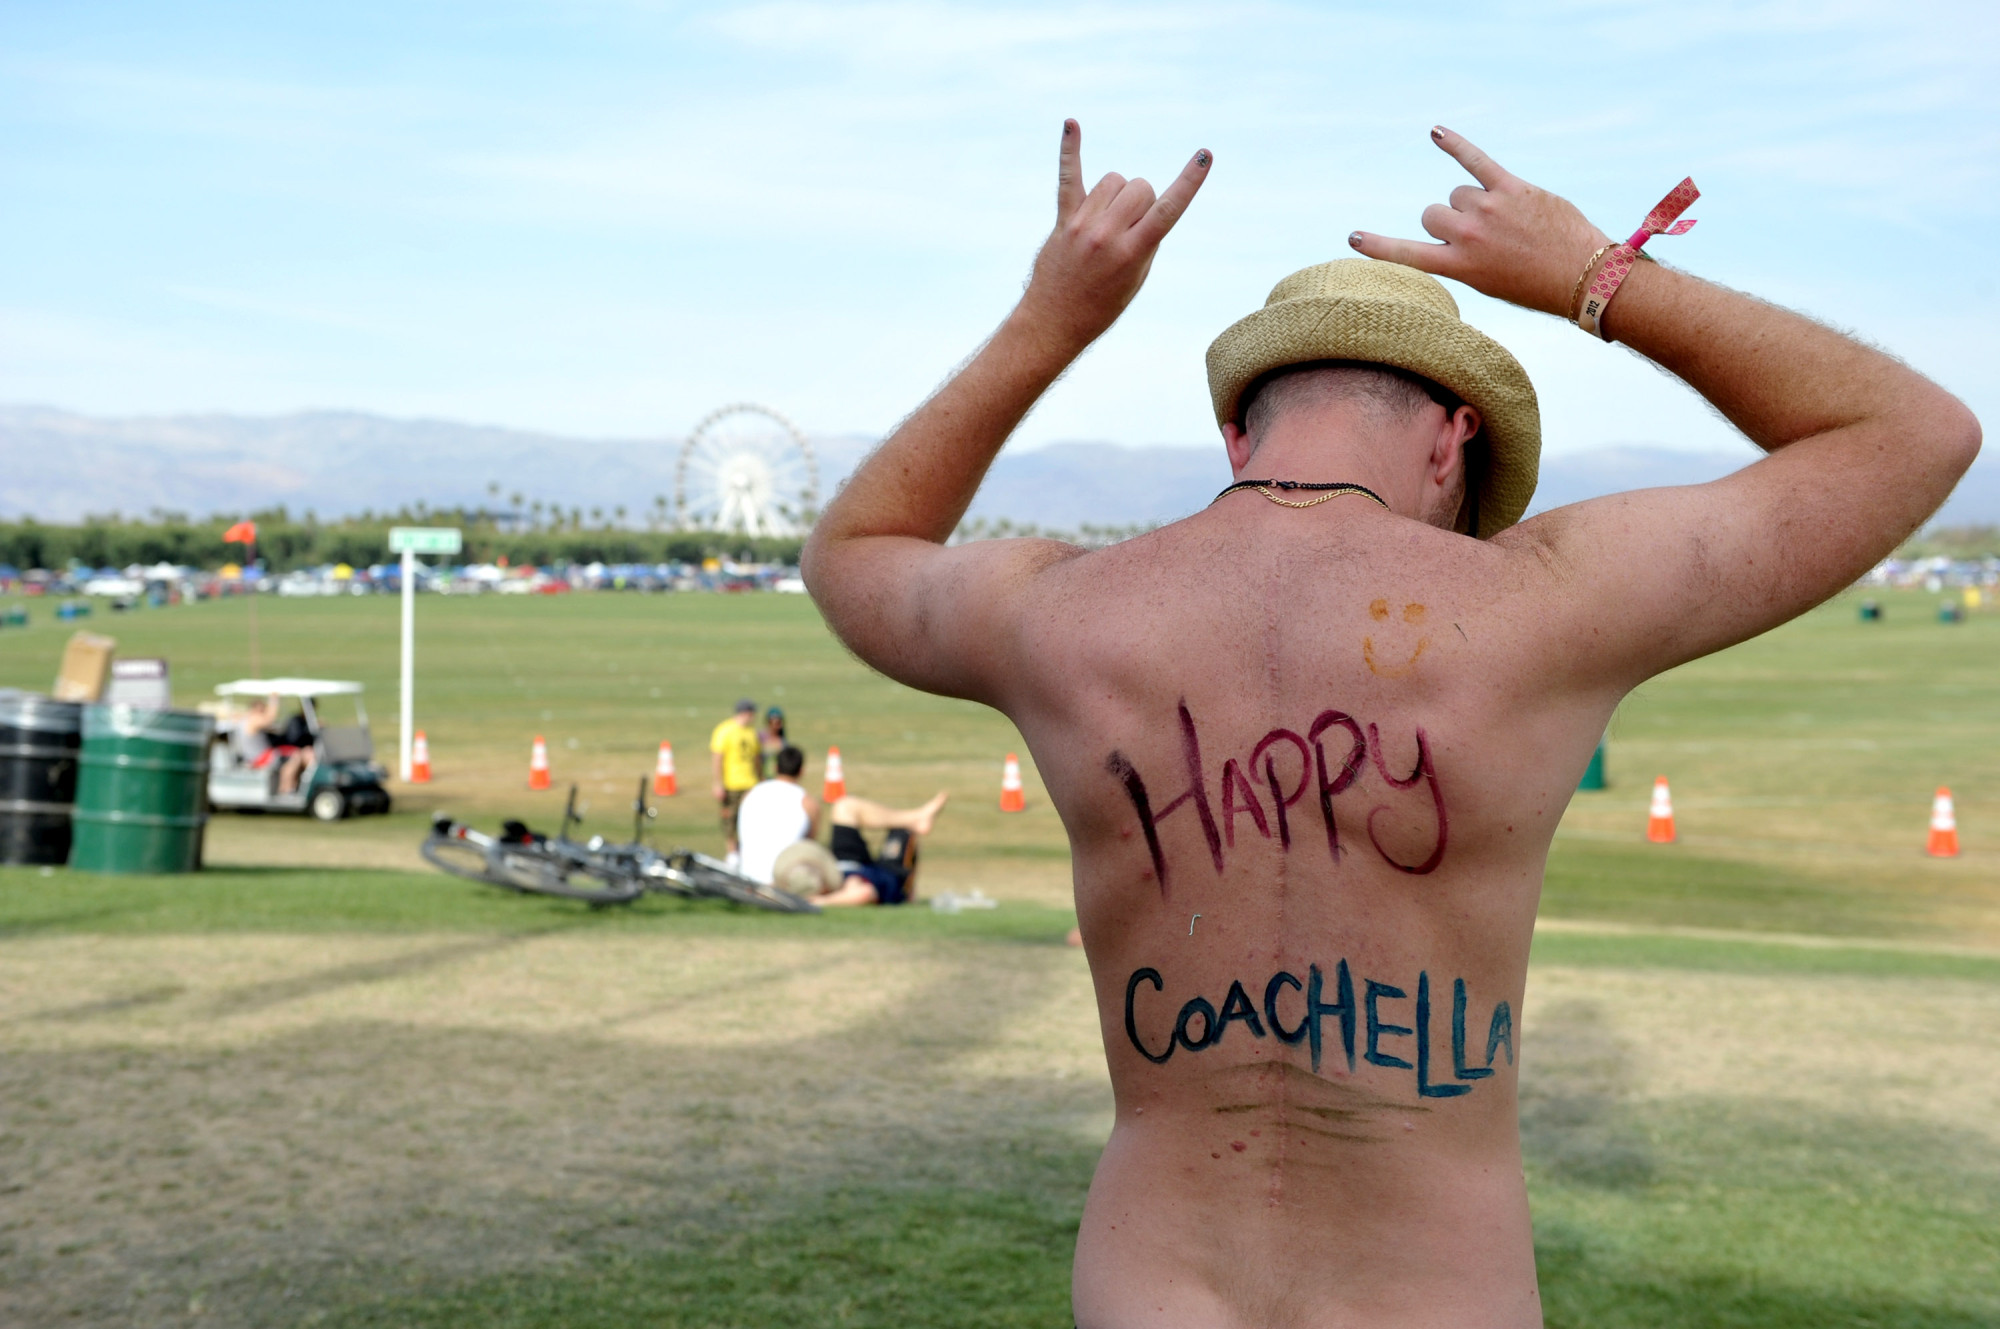 things to see at coachella besides the music